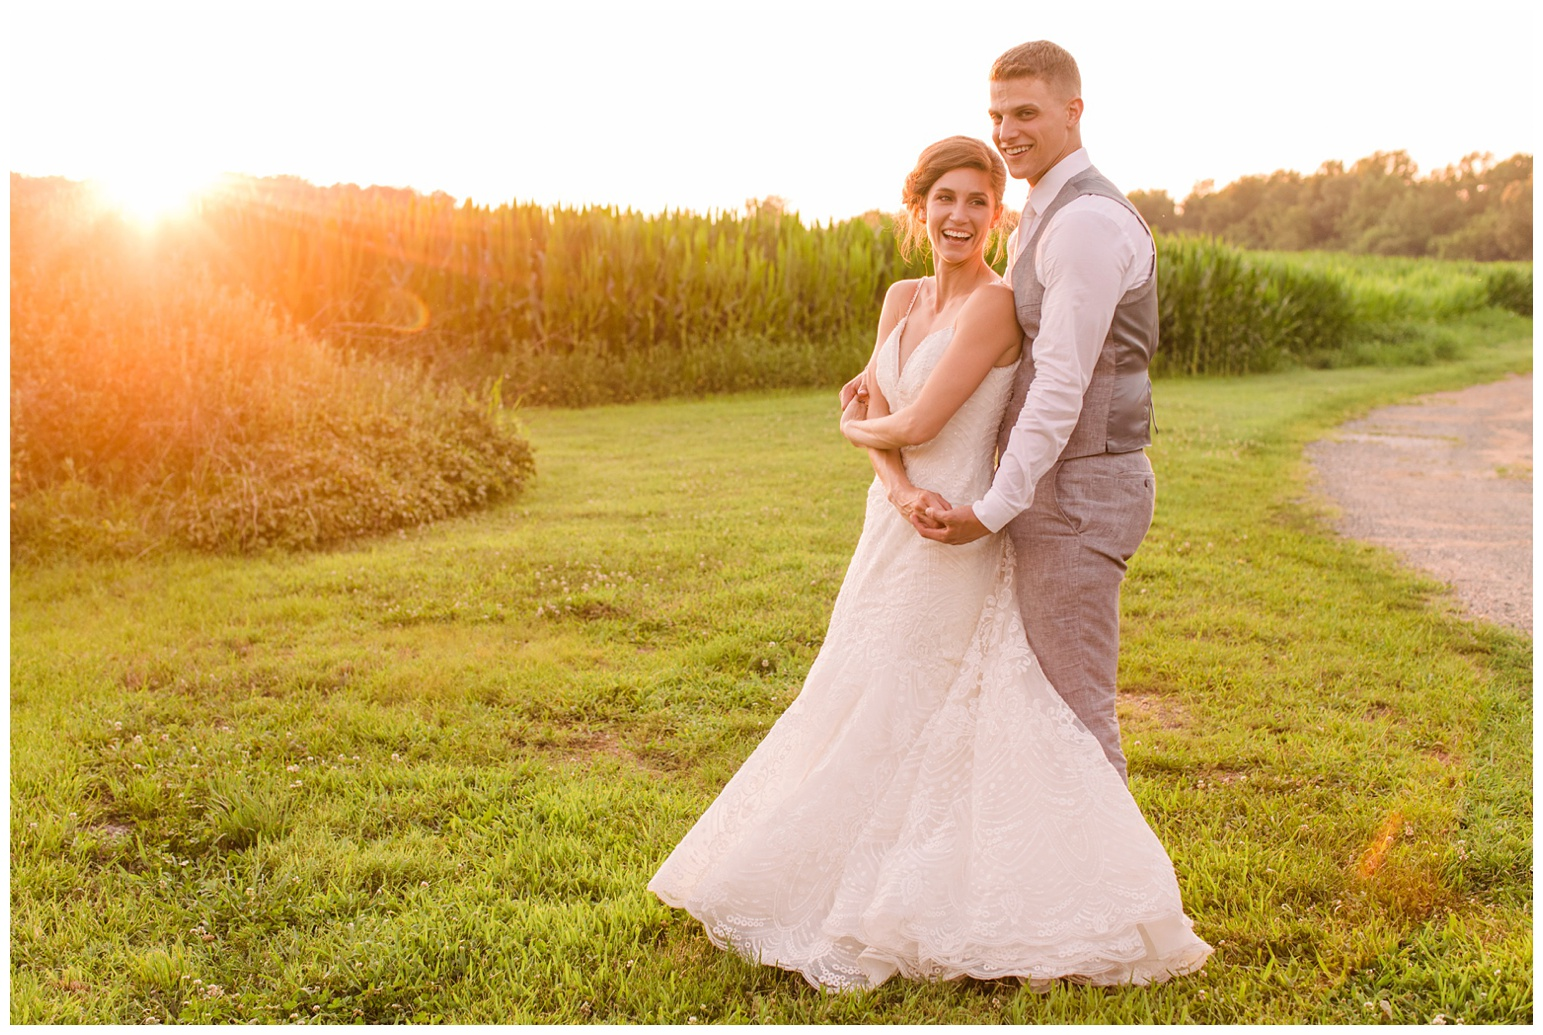 worsell manor wedding in the summer - warwick md - now featured on My Eastern Shore Wedding - coastal - sea - nautical - eastern shore - inspired wedding ideas and inspo - photo of bride and groom outdoors at sunset - golden hour - in front of corn field